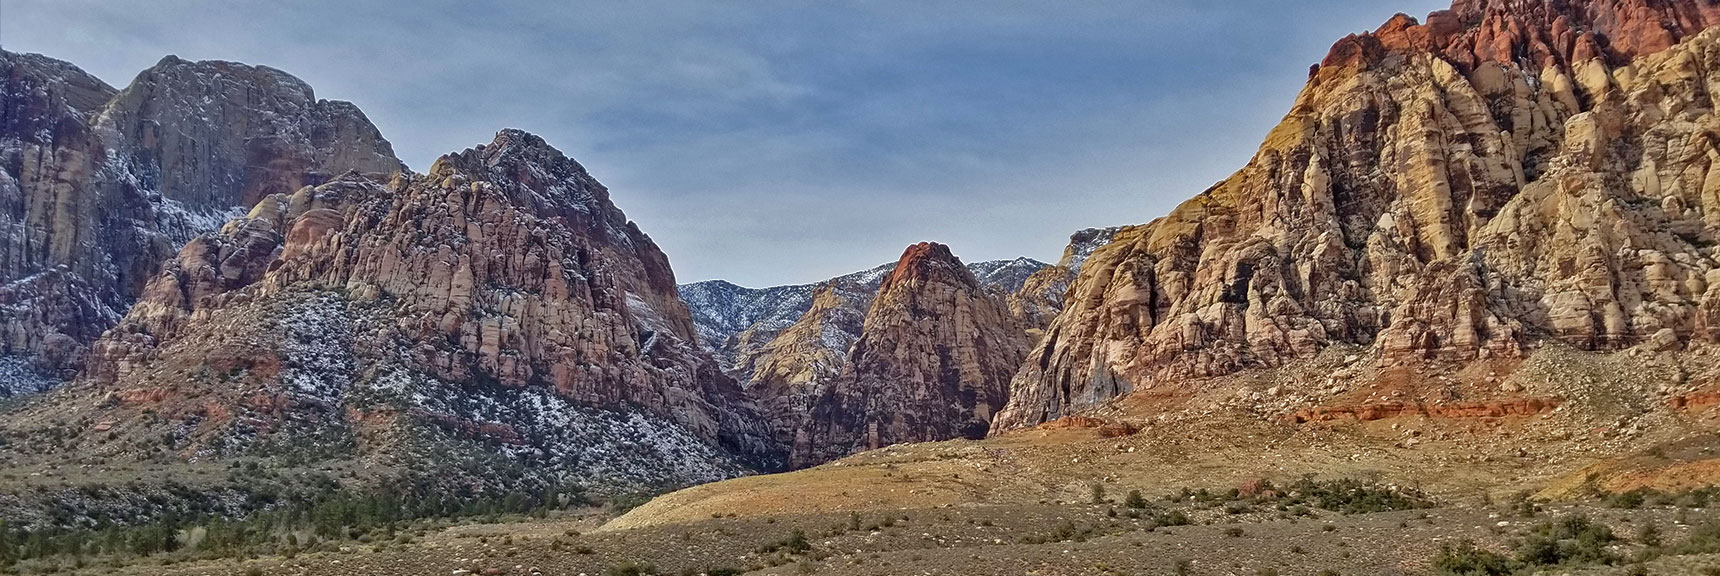 Red Rock National Park View of Pine Creek Canyon from Scenic Drive